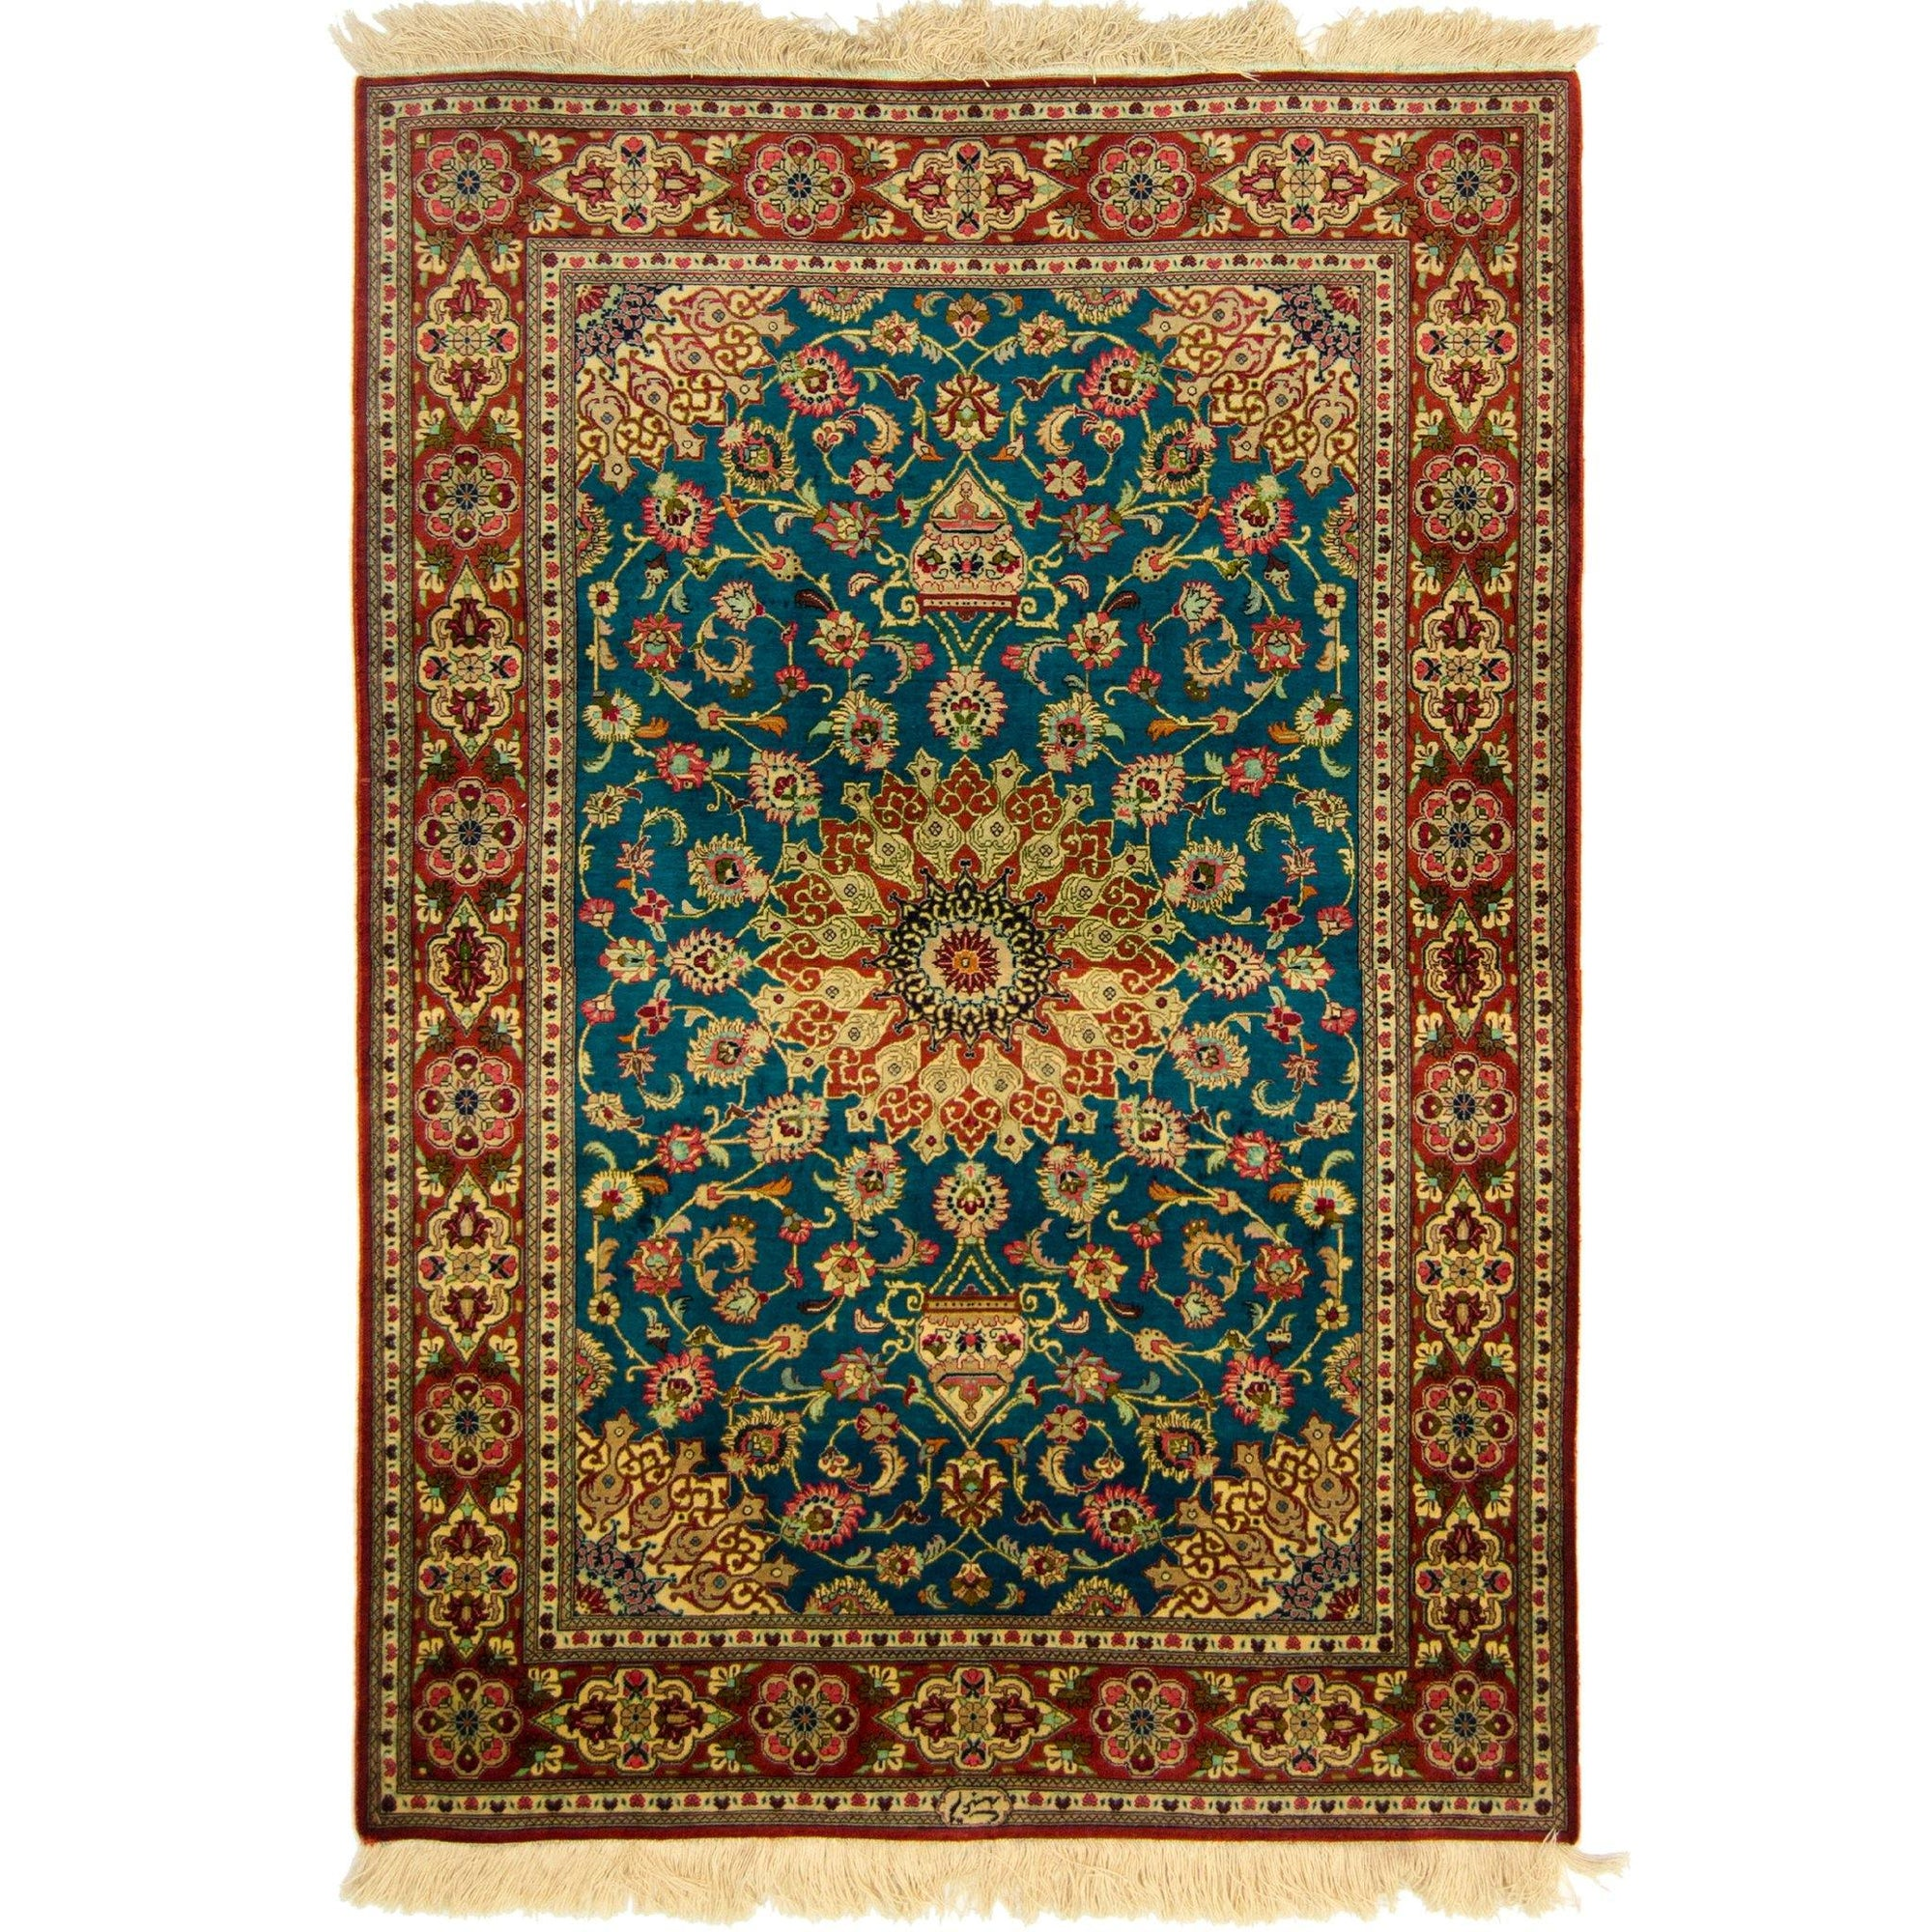 Fine Hand-knotted Persian Qhom (Qum) Silk Rug ( SIGNED) Persian-Rug | House-of-Haghi | NewMarket | Auckland | NZ | Handmade Persian Rugs | Hand Knotted Persian Rugs